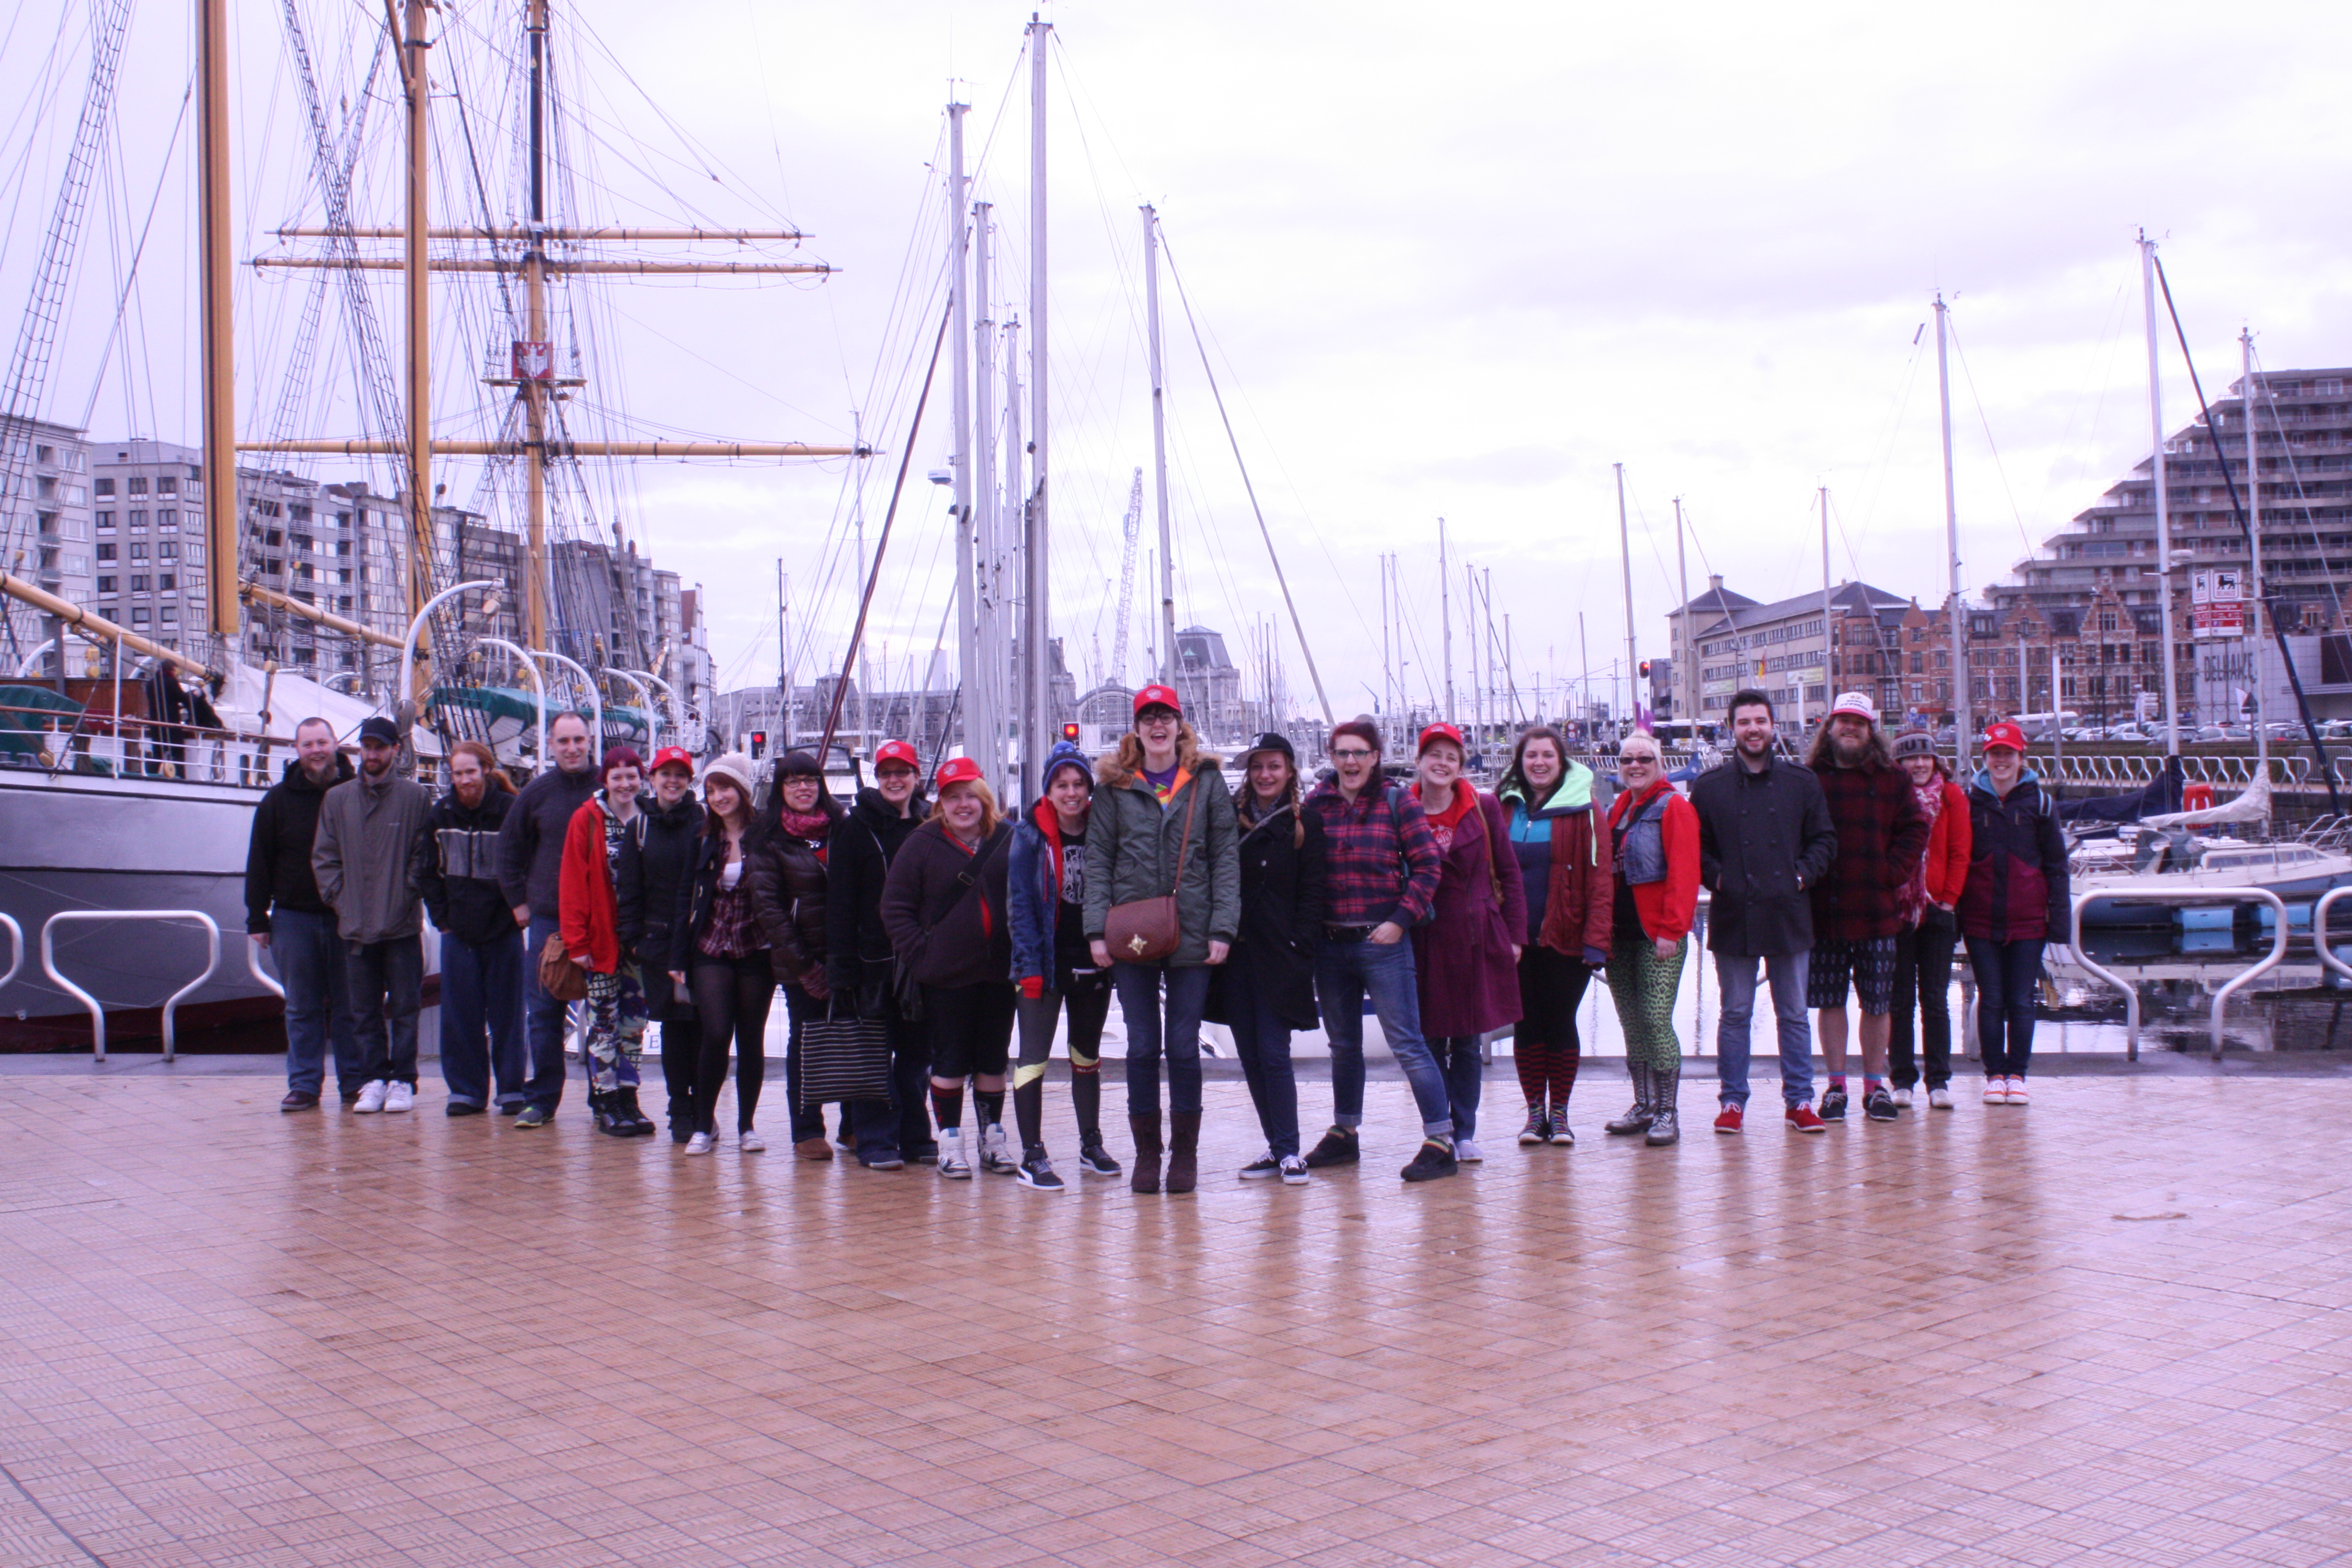 Team shot by boats!